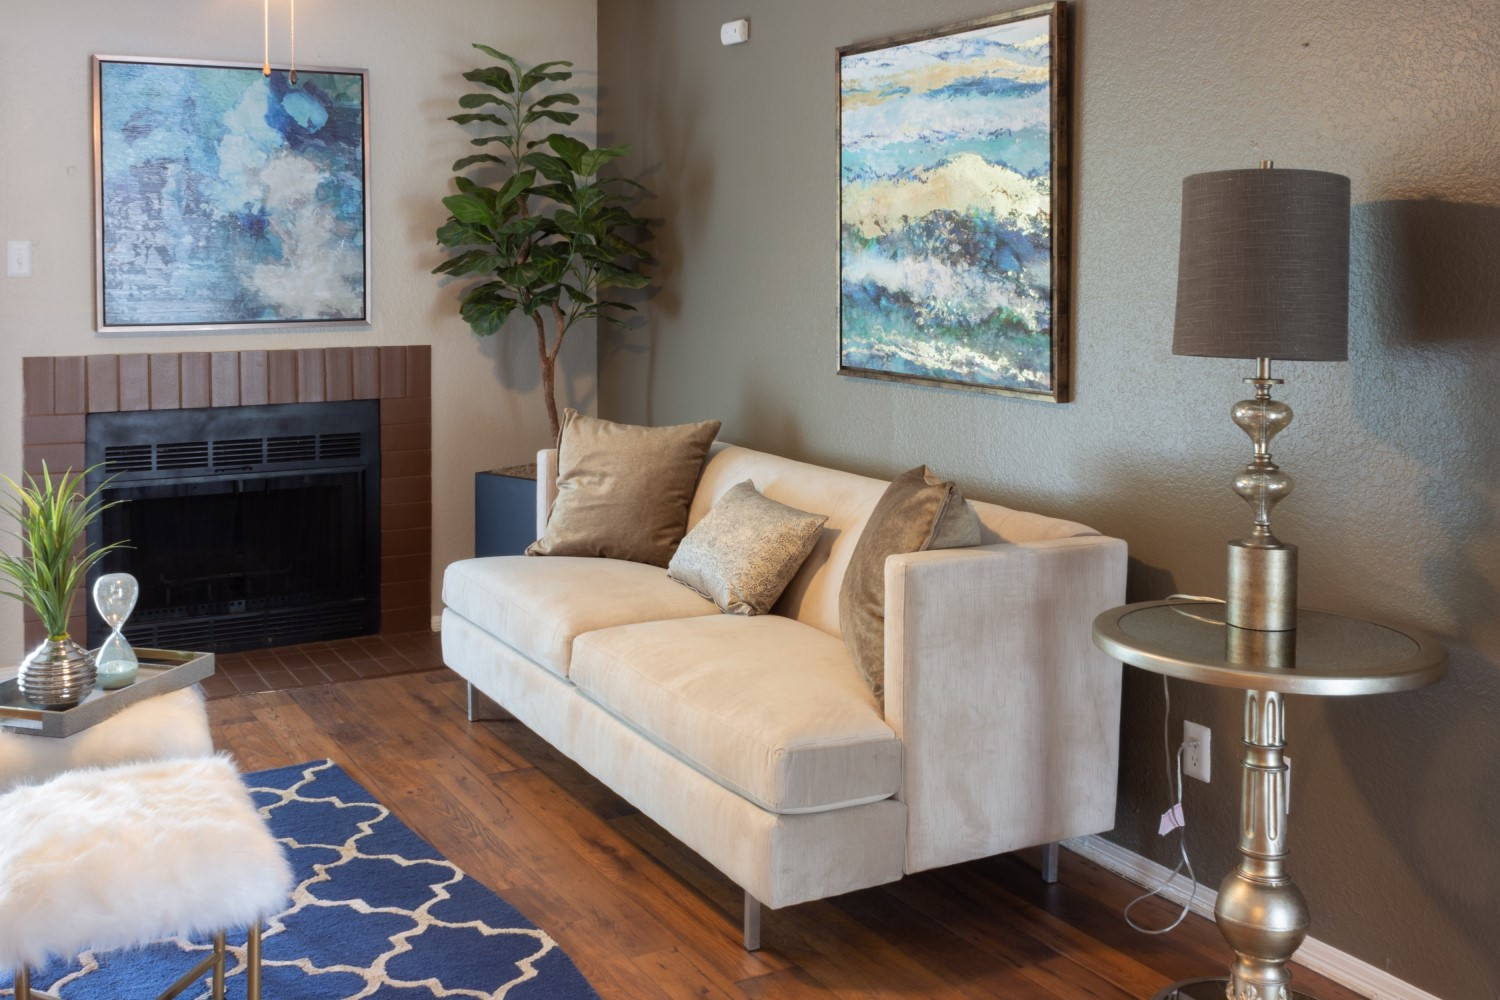 1 and 2-Bedroom Floor Plans for Rent at Montecito Creek Apartments in Dallas, Texas